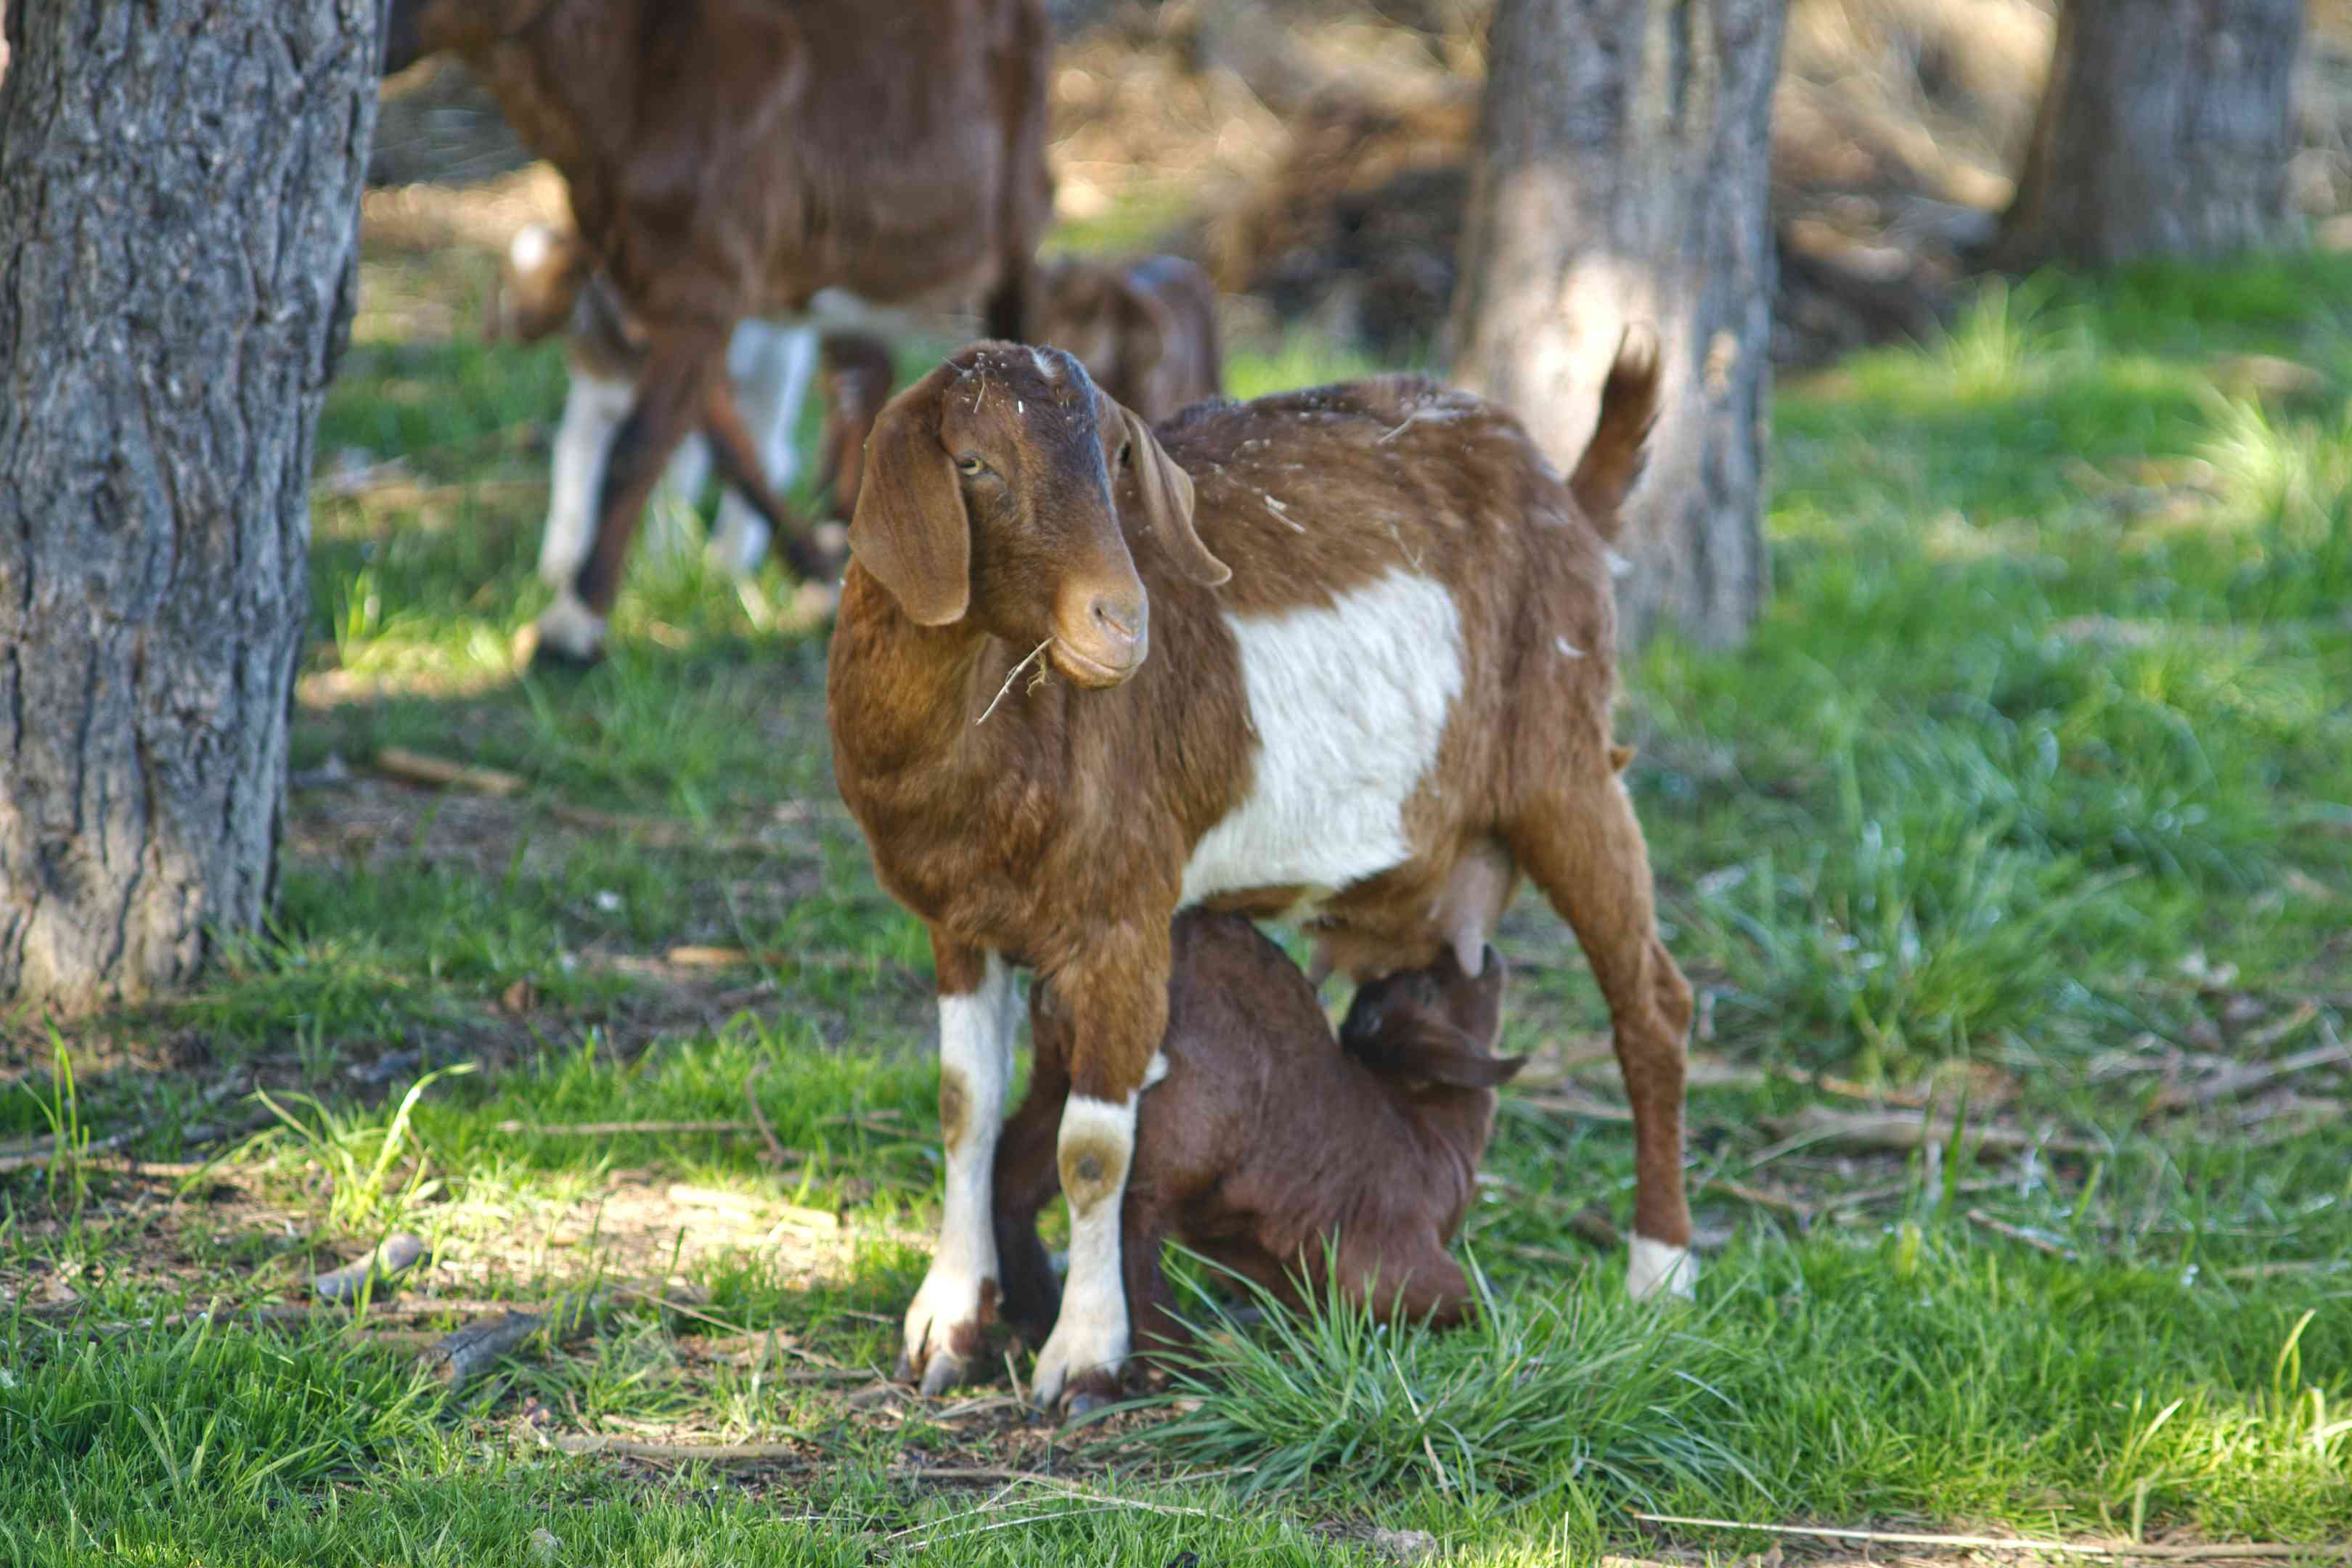 brown and white mamma goat feeds baby goat milk outside surrounded by trees